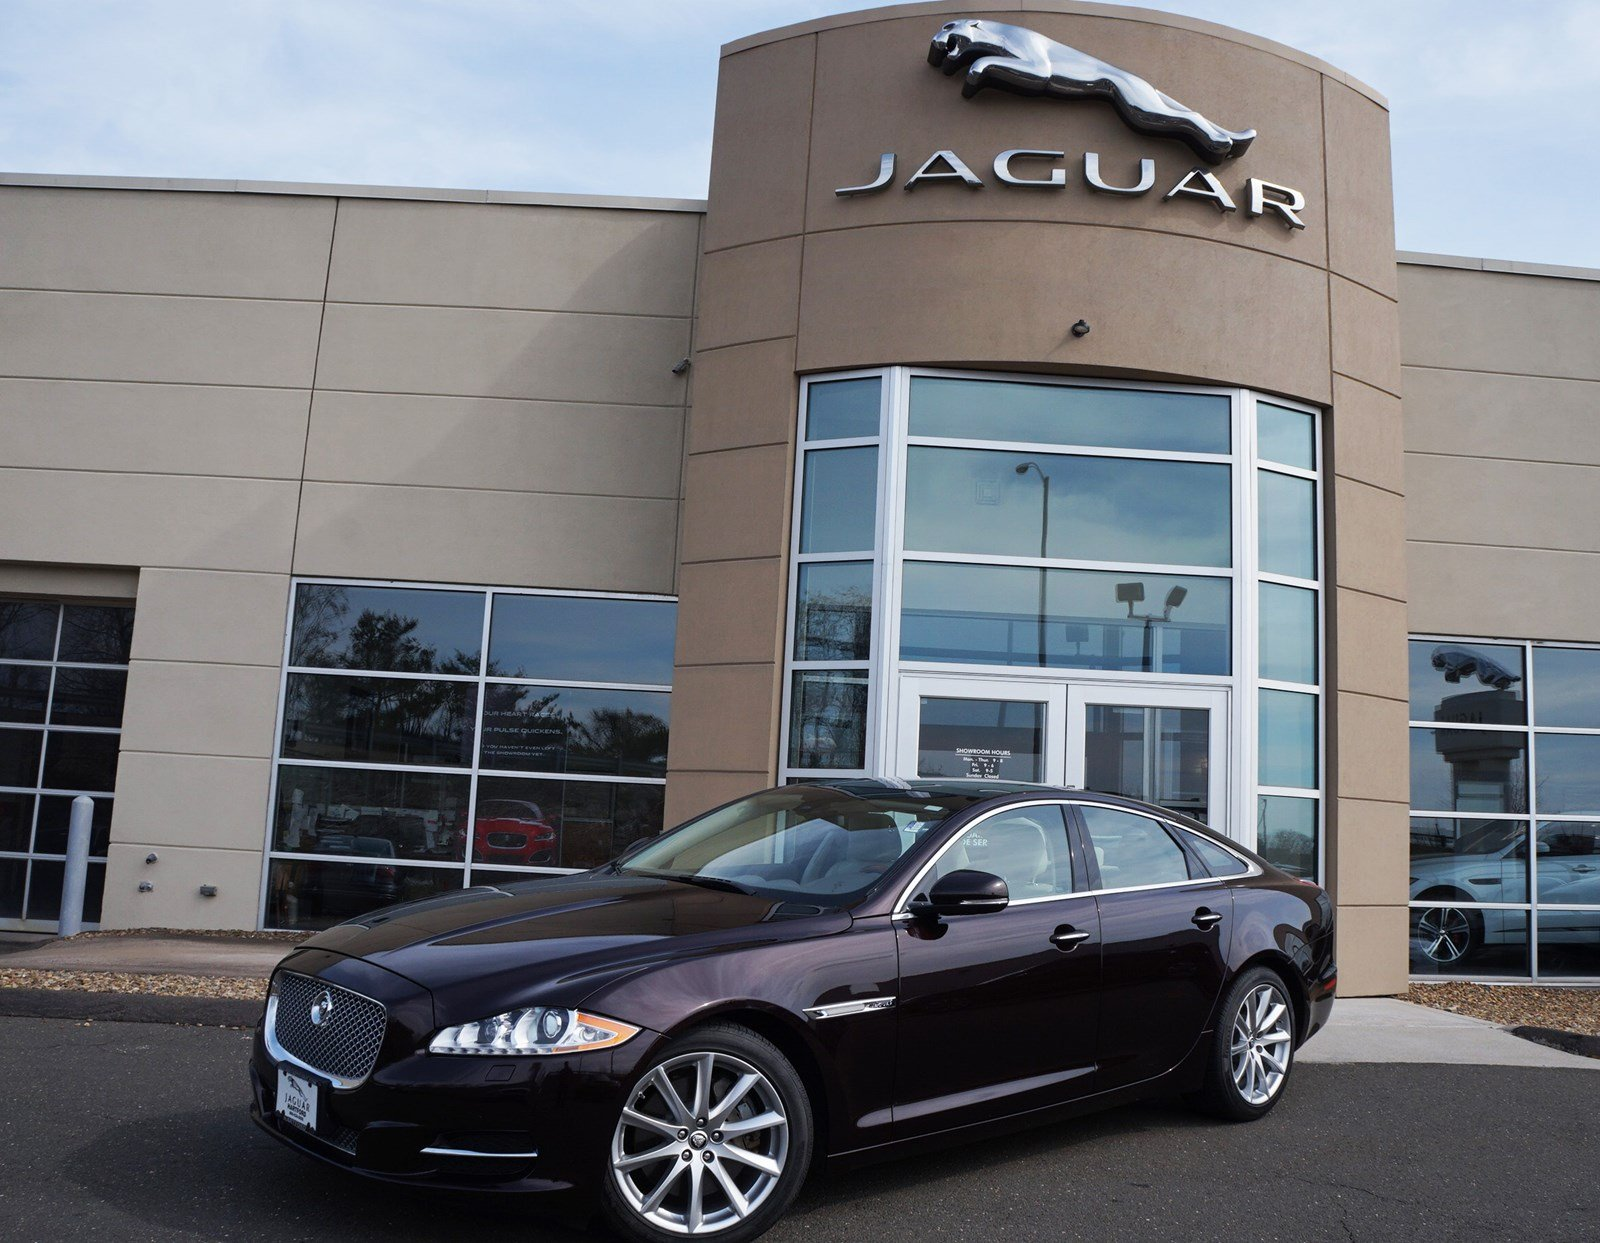 2013 Jaguar XJ 4DR SDN AWD Sedan